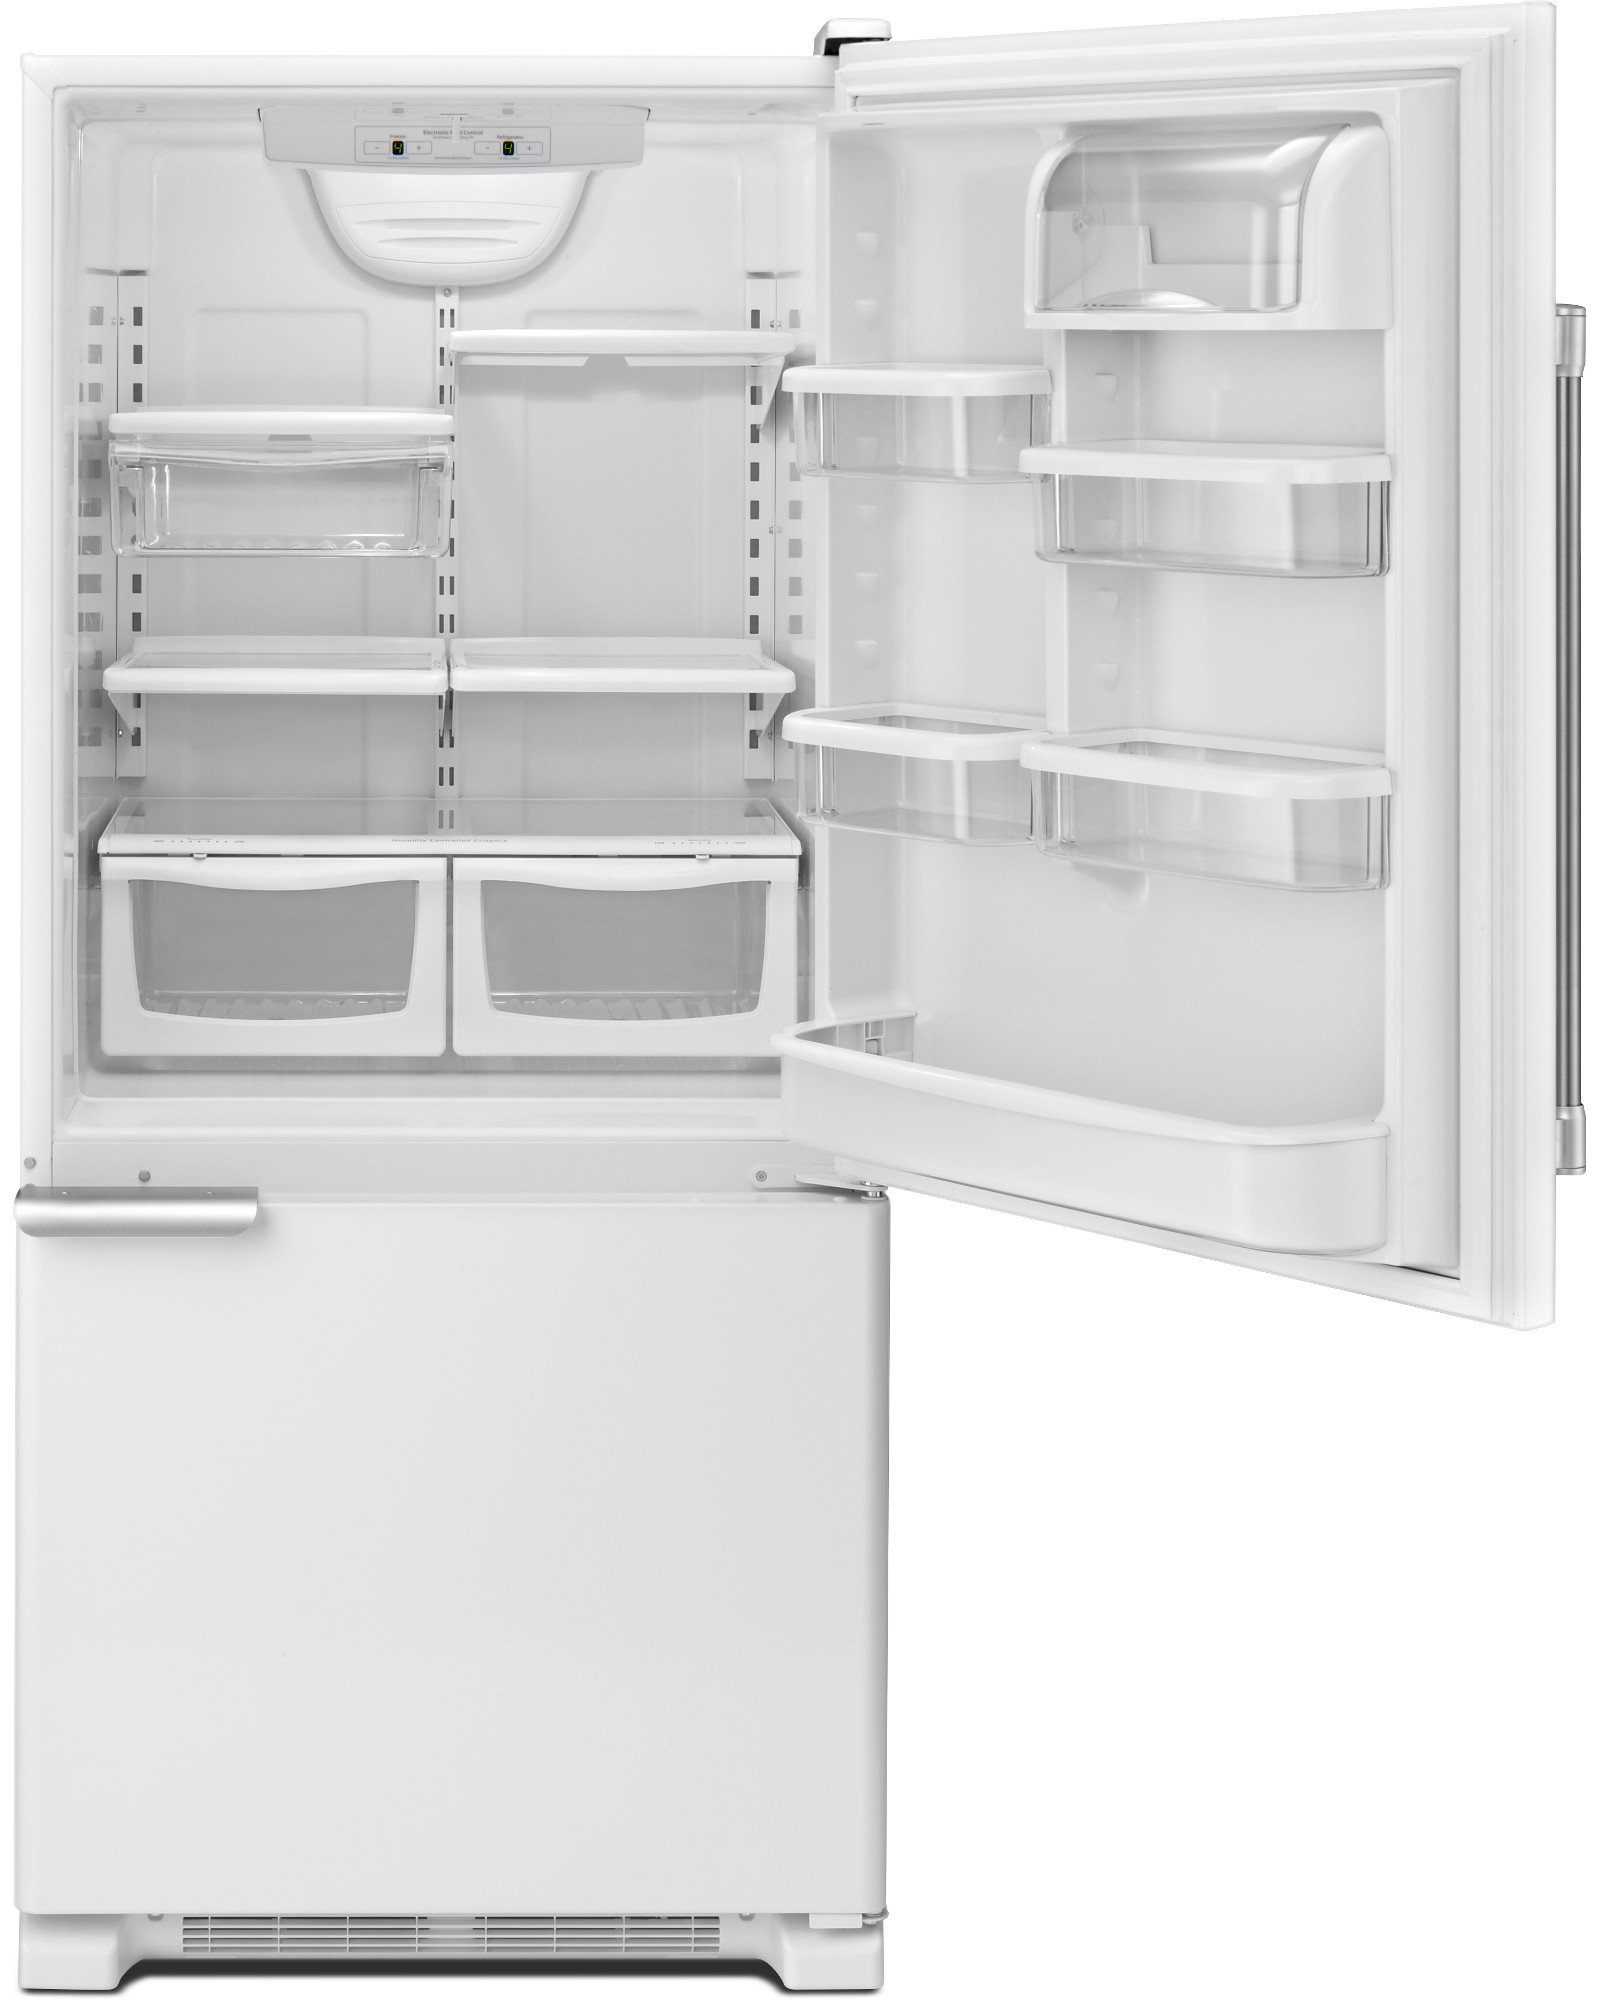 Maytag MBF1953DEH 19 cu. ft. Single Door Bottom Freezer Refrigerator - White